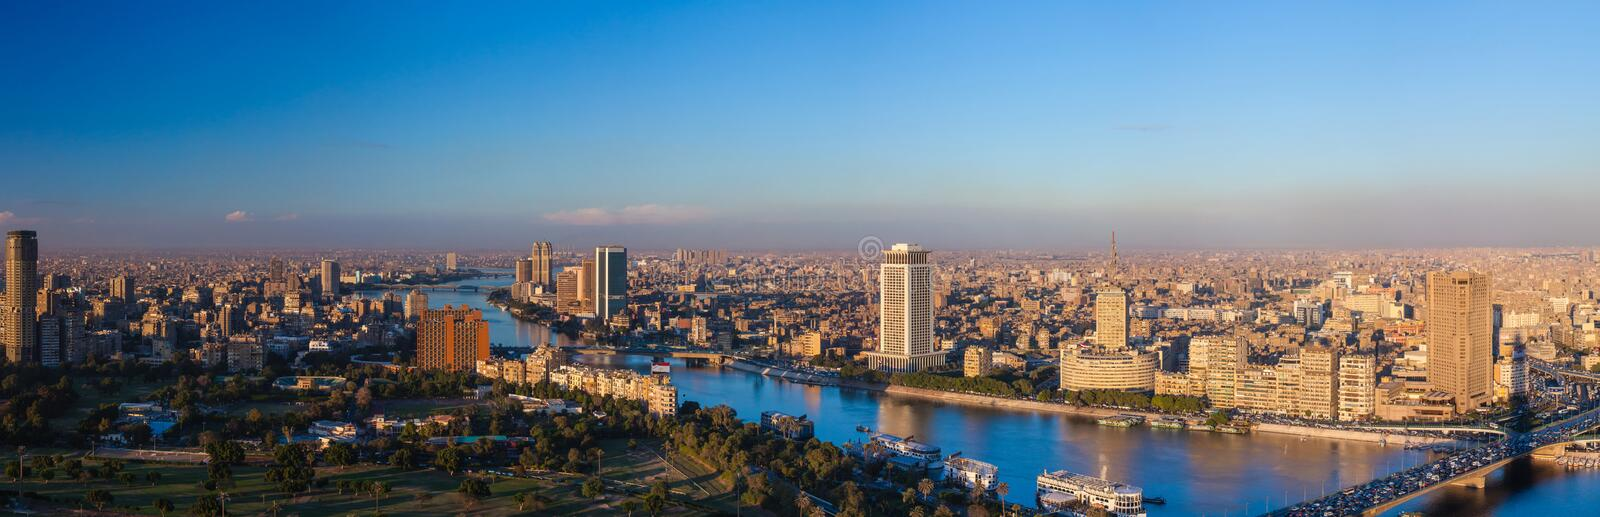 Panorama of Cairo from the Cairo TV tower at sunset stock photos